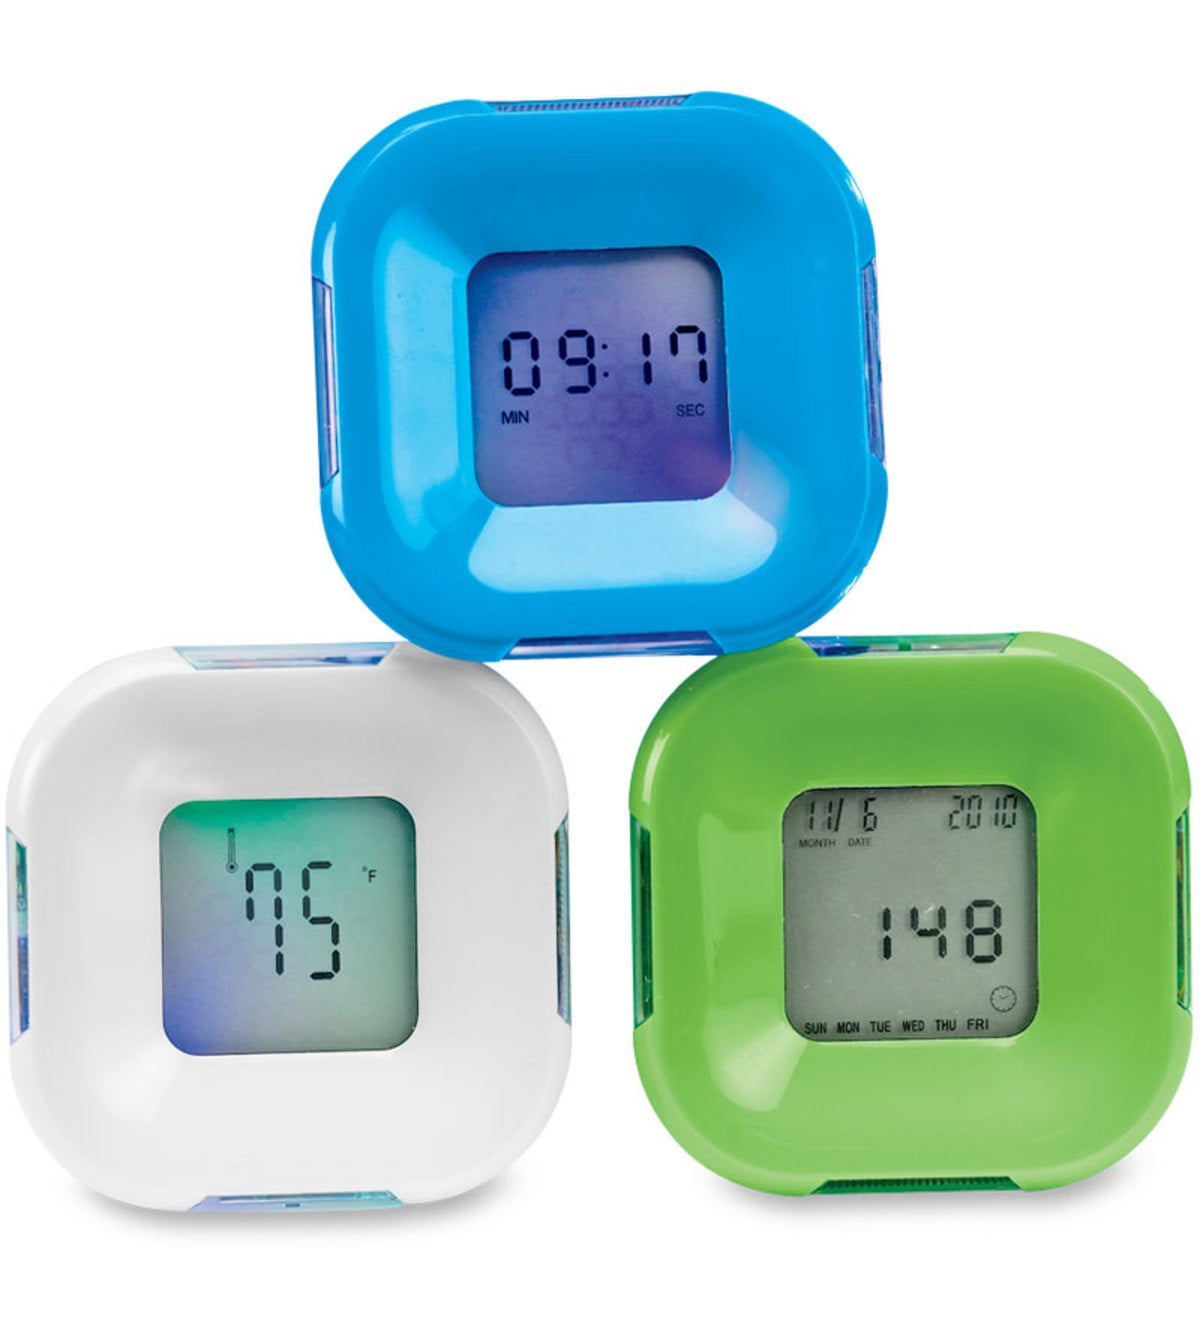 4-in-1 Digital Flip Desk Clock with Temperature, Timer and Alarm